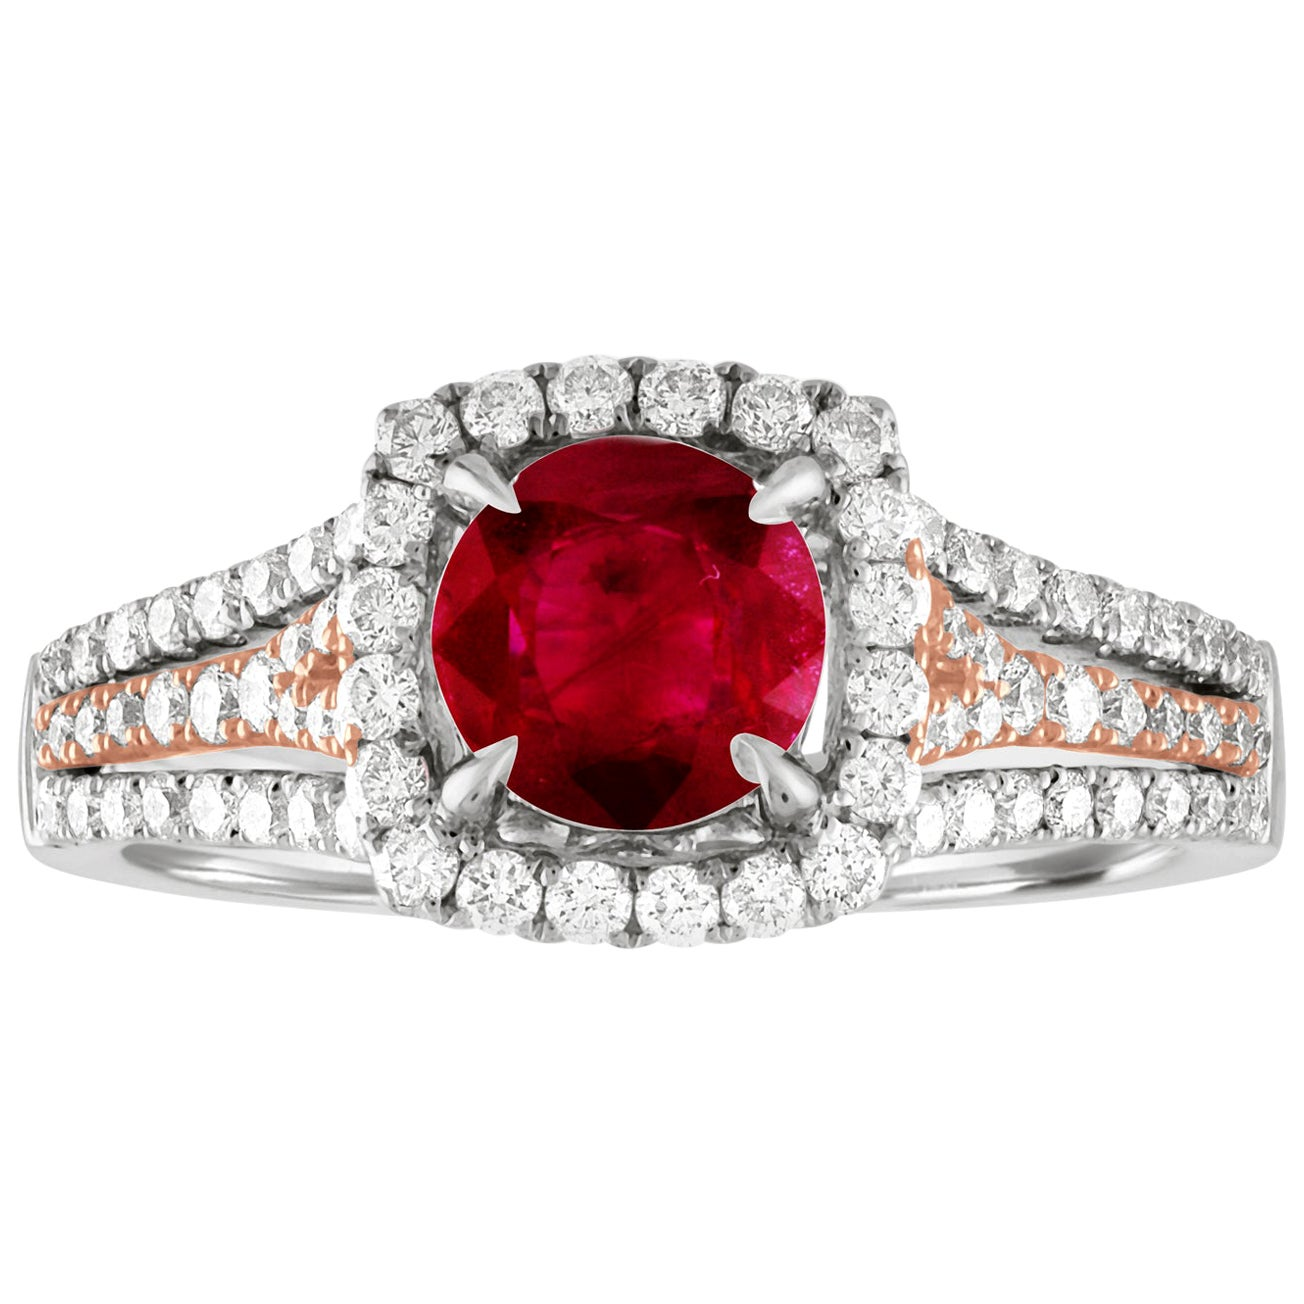 AGL Certified 1.09 Carat Round Ruby Diamond Gold Ring